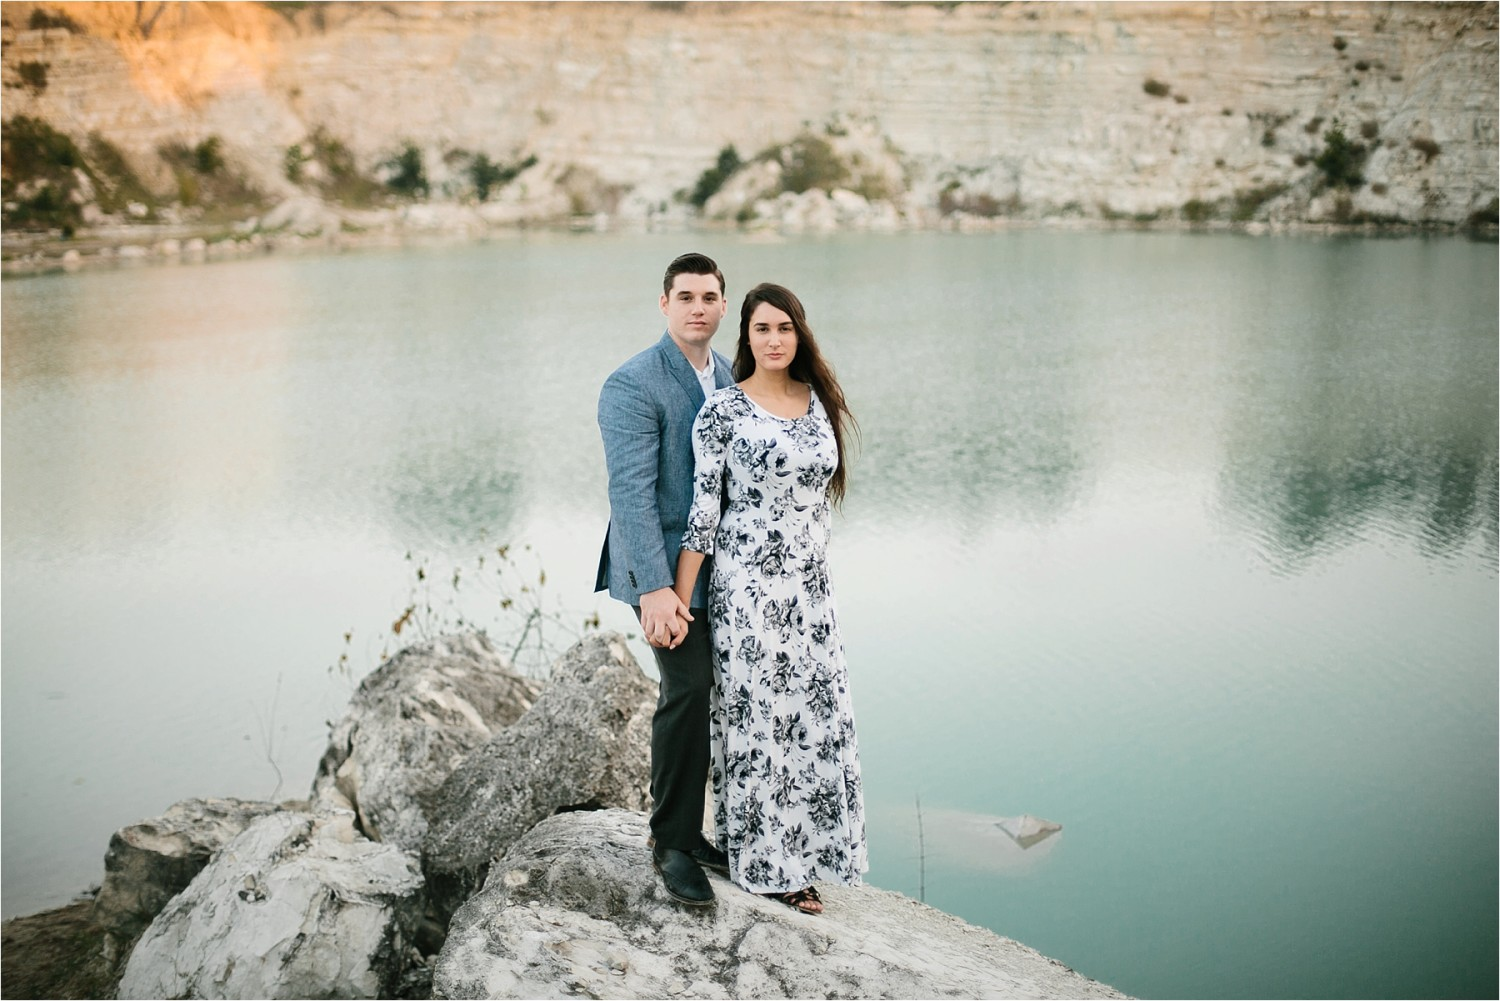 an-intimate-sunrise-session-by-north-texas-wedding-photographer-rachel-meagan-photography-_-15